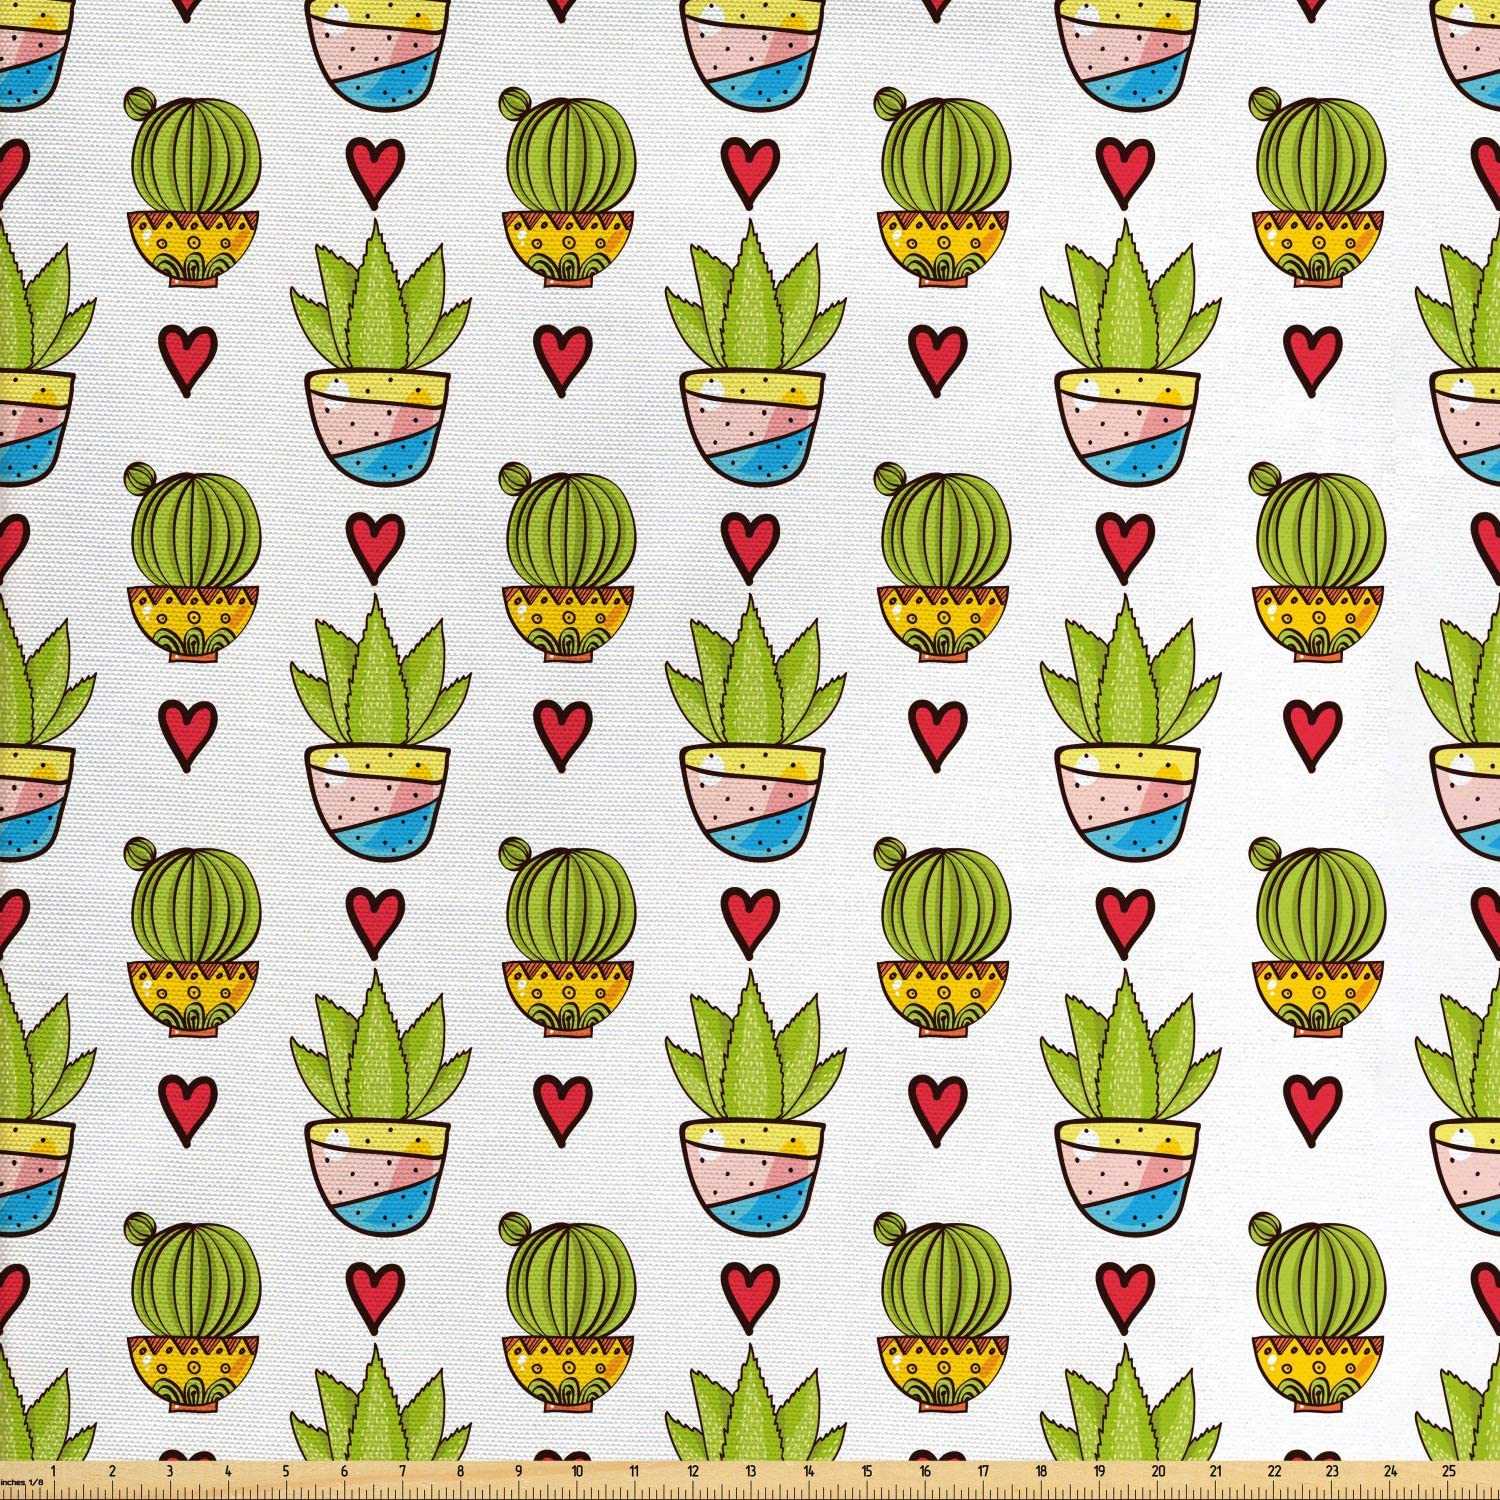 Ambesonne Cactus Fabric by The Yard, Illustration of Colorful Desert Plantation Succulents in Pots and Doodle Hearts, Decorative Fabric for Upholstery and Home Accents, 1 Yard, Multicolor